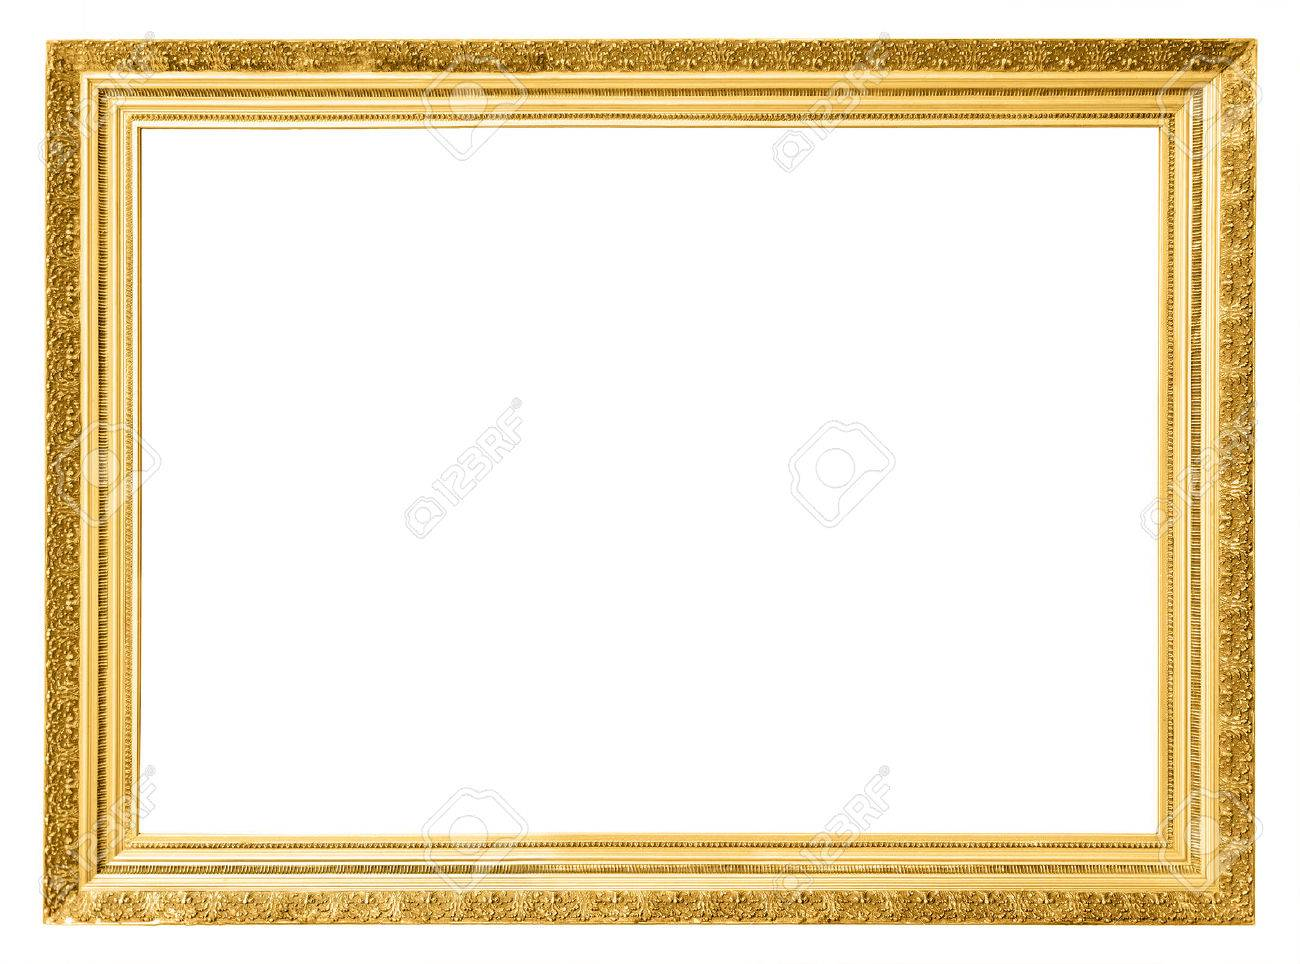 Gold Vintage Frame Isolated On White Background Stock Photo, Picture ...